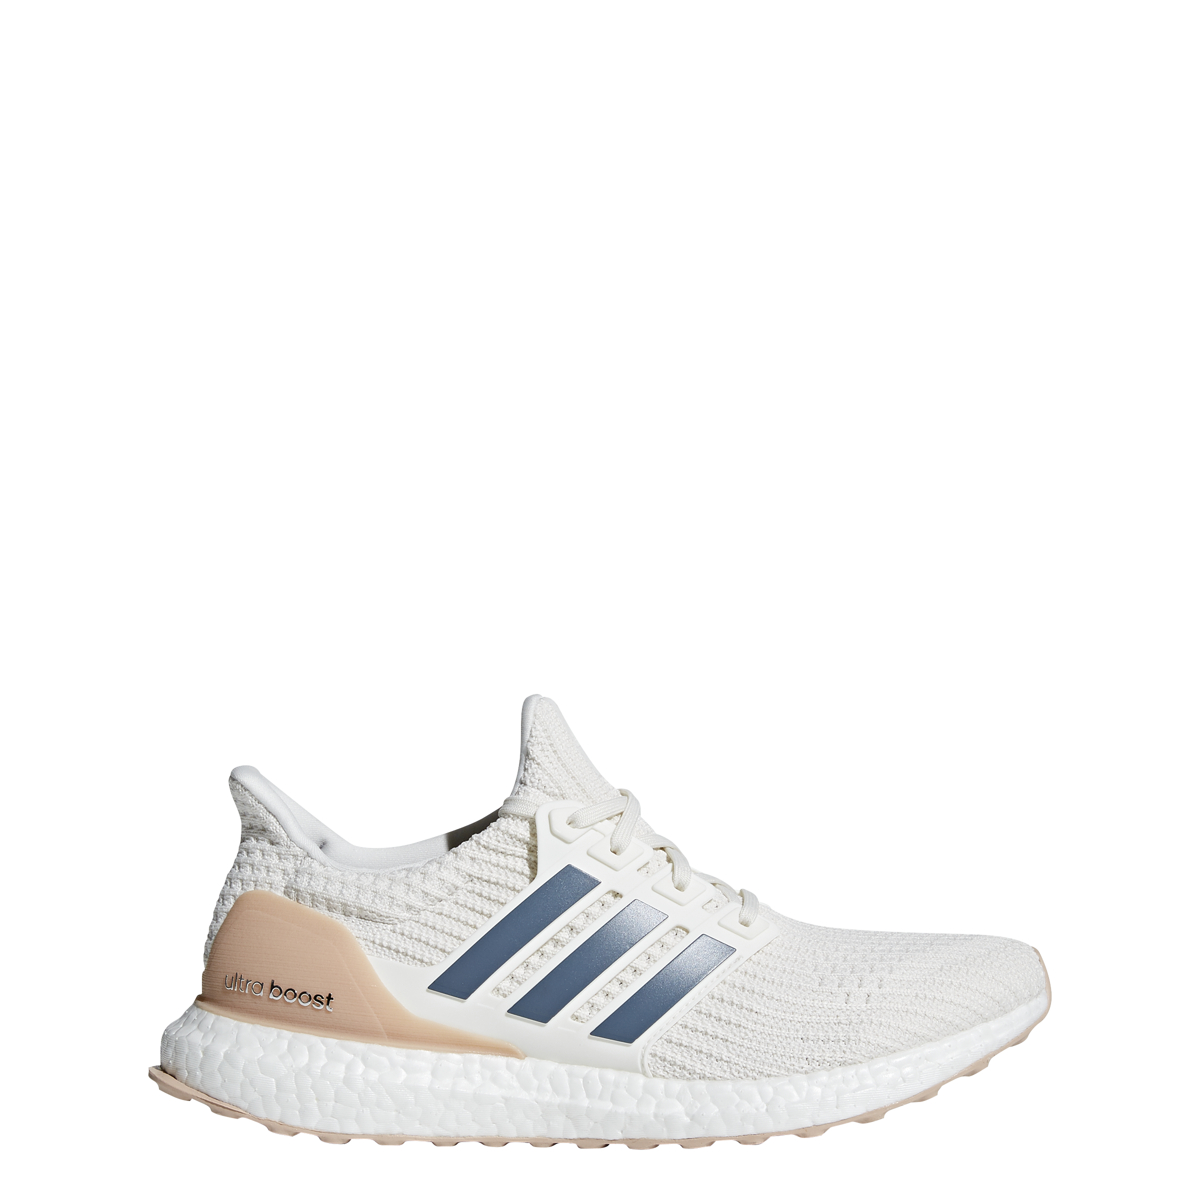 fe7762966 Details about Men s Adidas UltraBOOST Running Shoe Cloud White Tech Ink Vapor  Grey